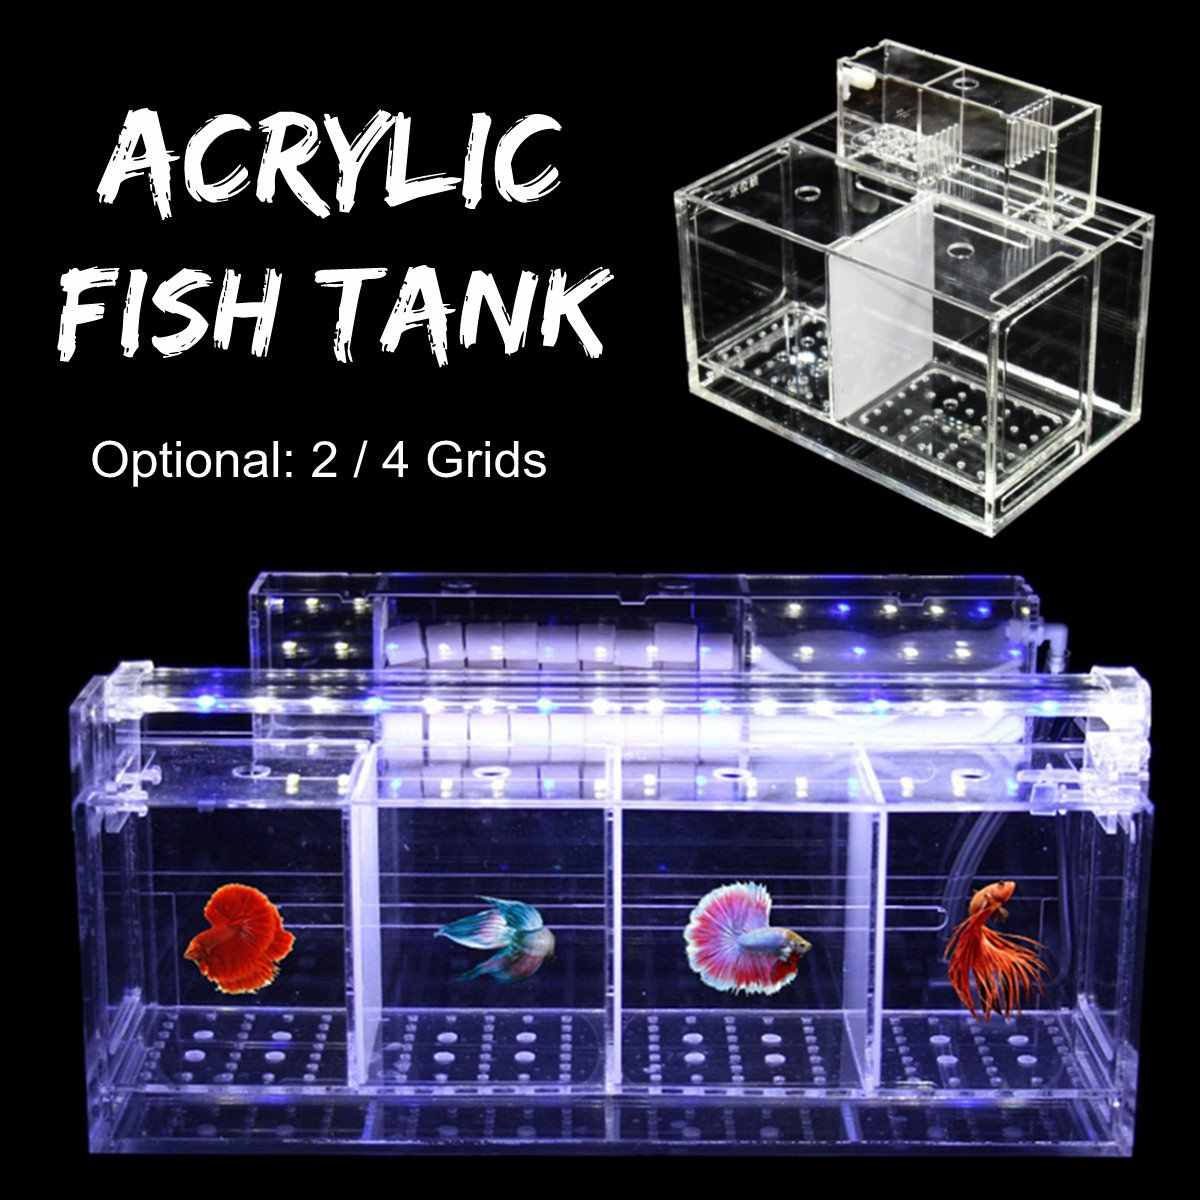 Transparan Acrylic Akuarium Bayi Betta Fish Tank Desktop Aquarium Filter Pembiakan Kotak Hatchery Isolasi Air Hewan Peliharaan